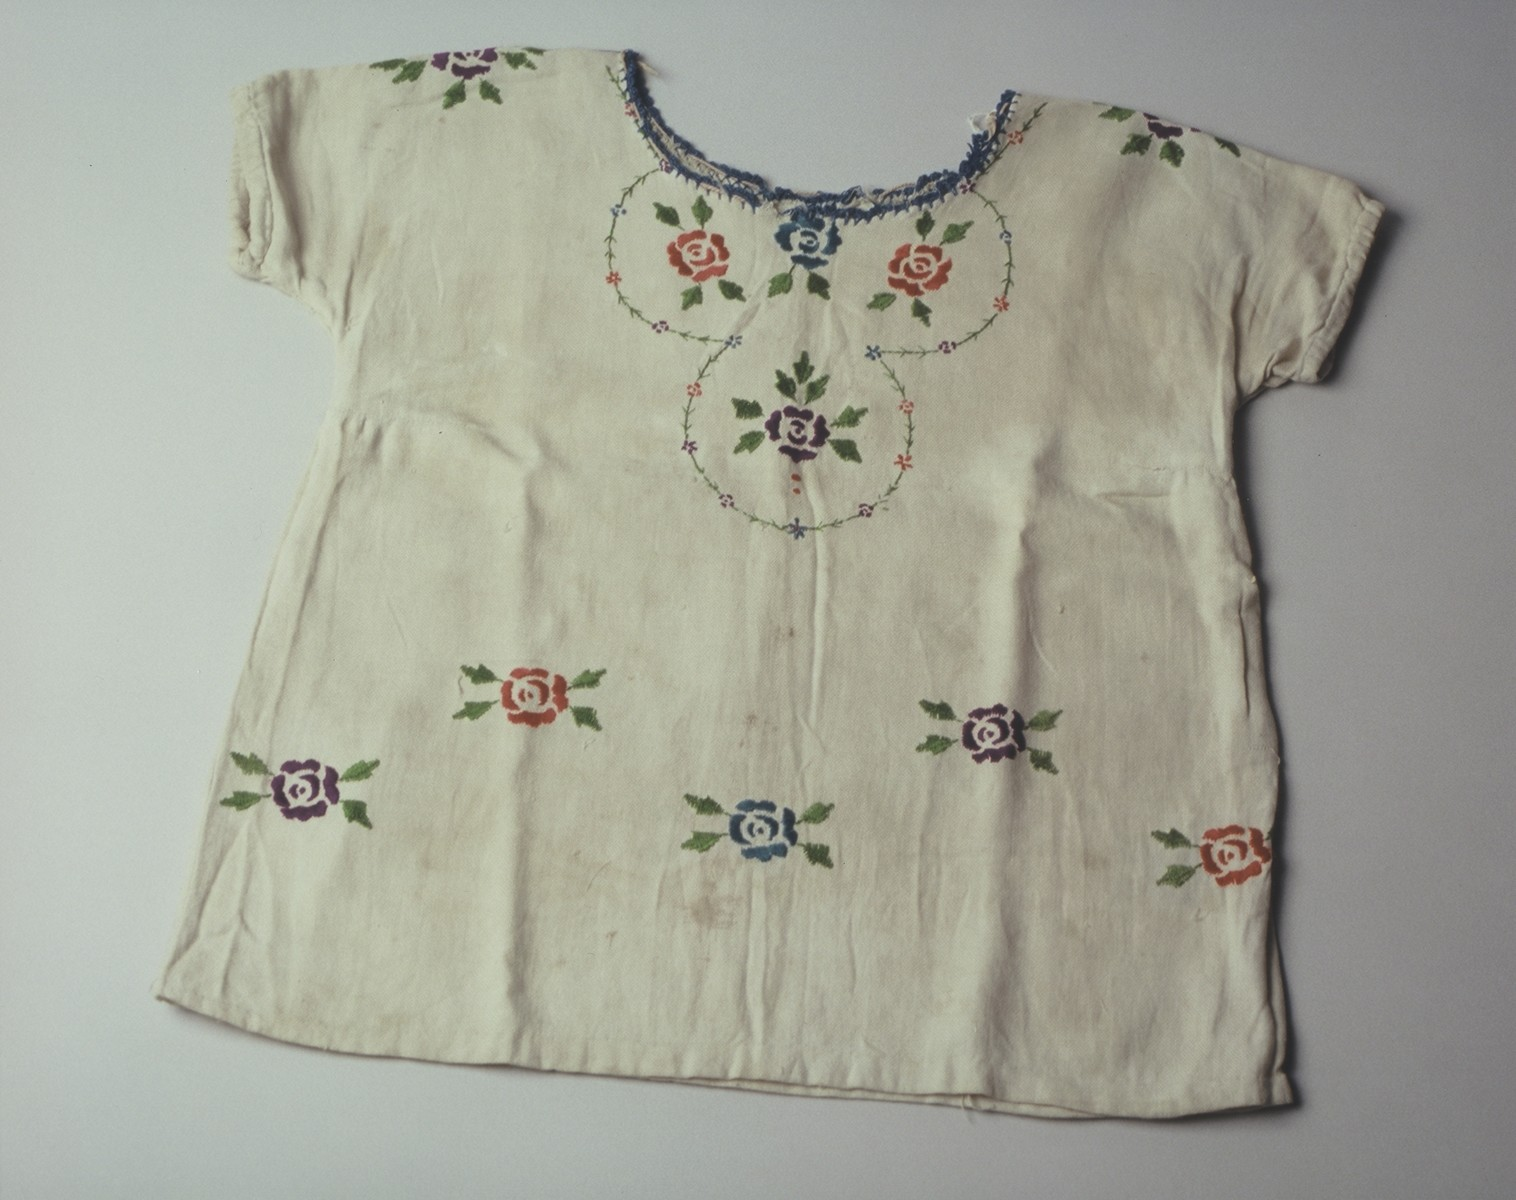 A child's dress embroidered with red and blue flowers with small green leaves.    The dress was hand embroidered by Lola Kaufman's mother in the Czortkow ghetto and worn by Lola in hiding.